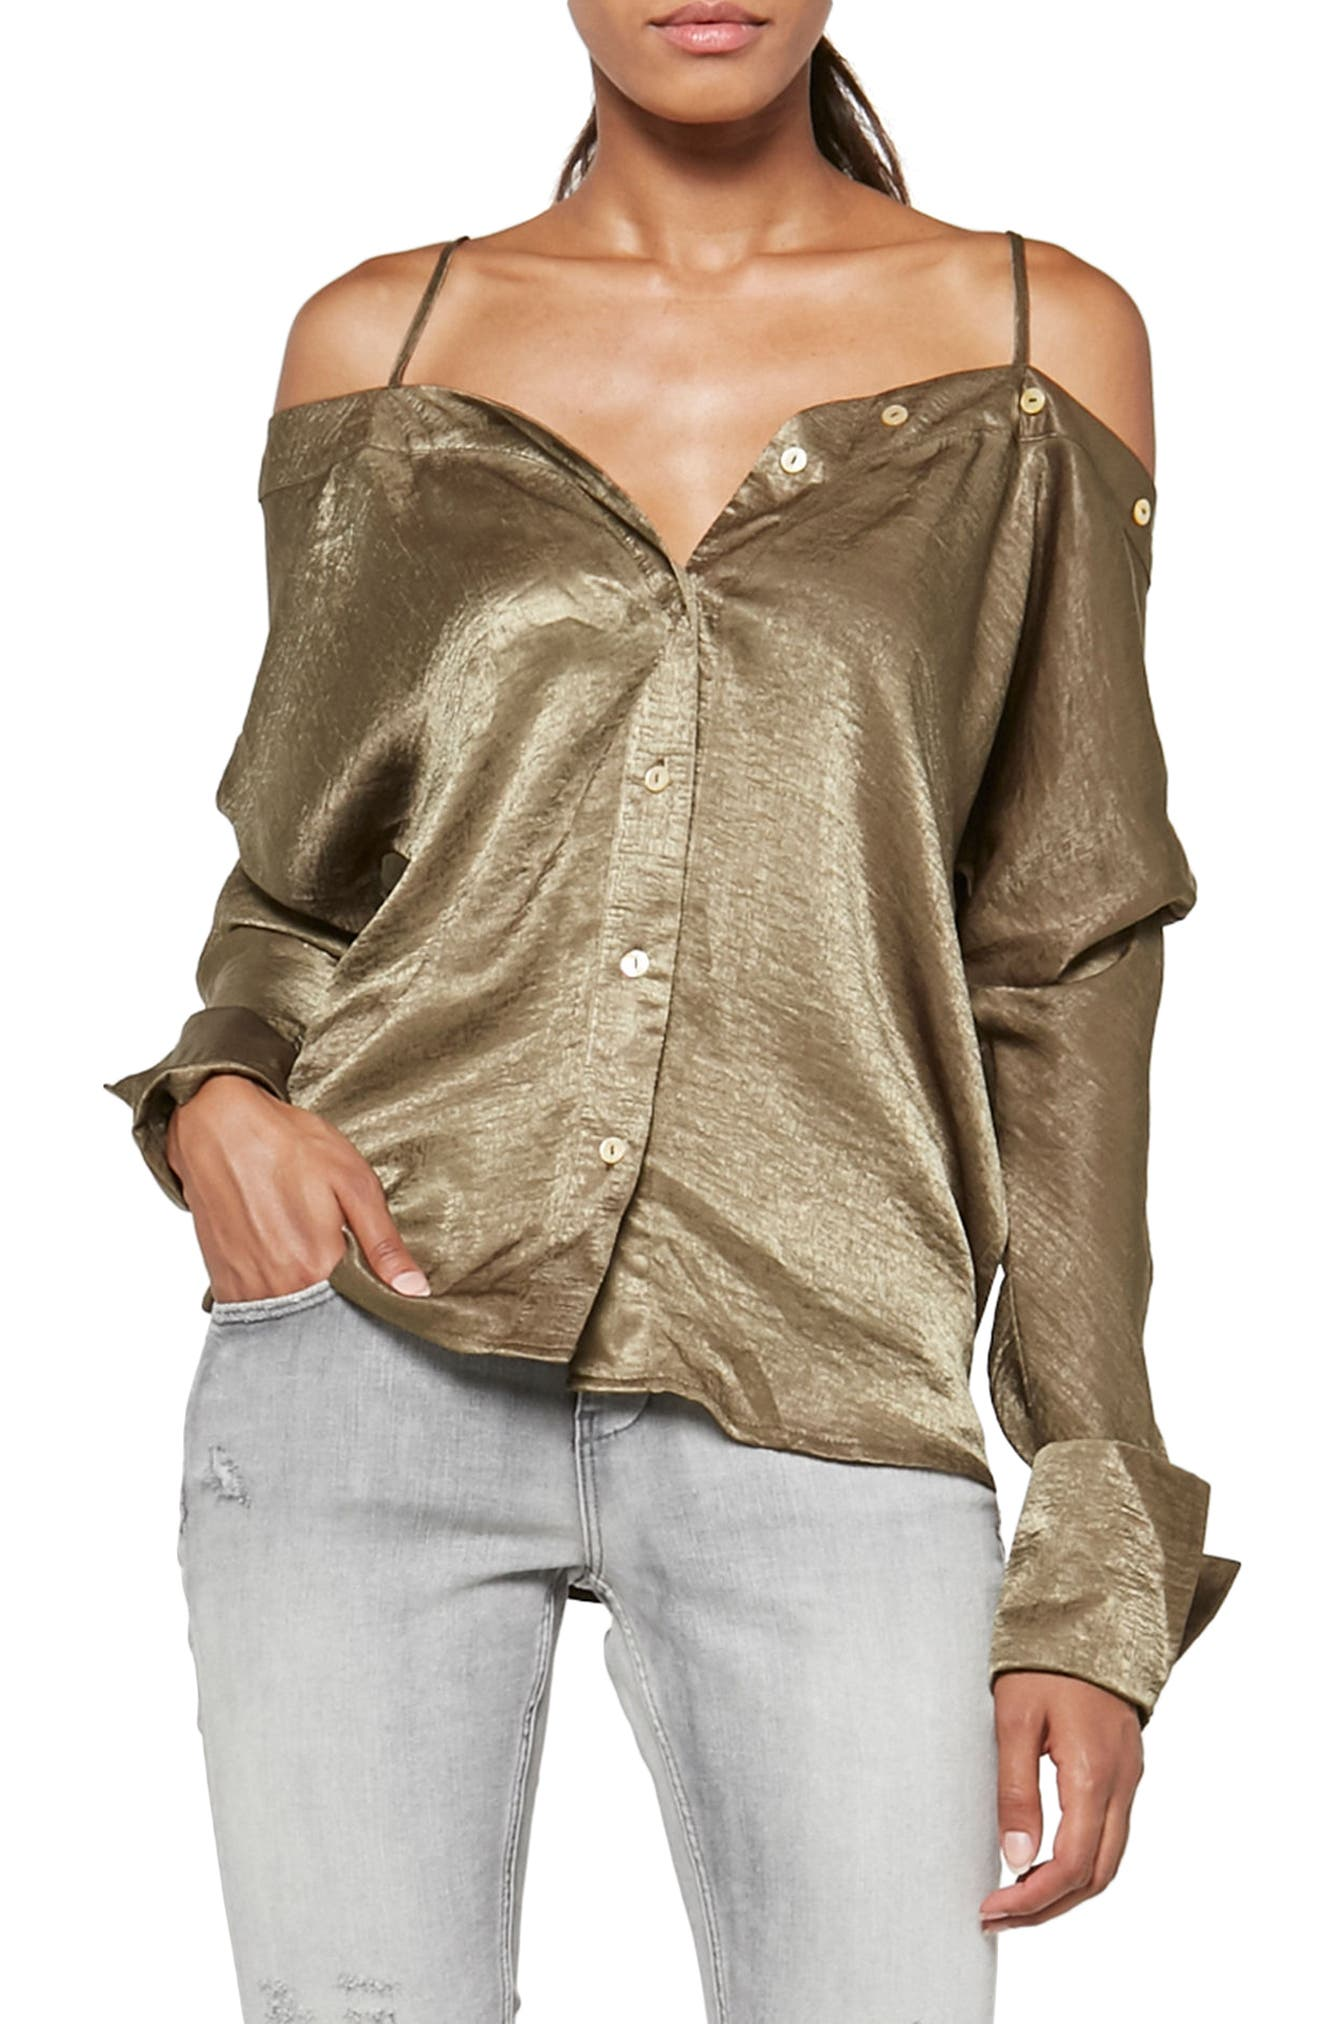 Alpha & Omega Satin Off the Shoulder Blouse,                         Main,                         color, Olive